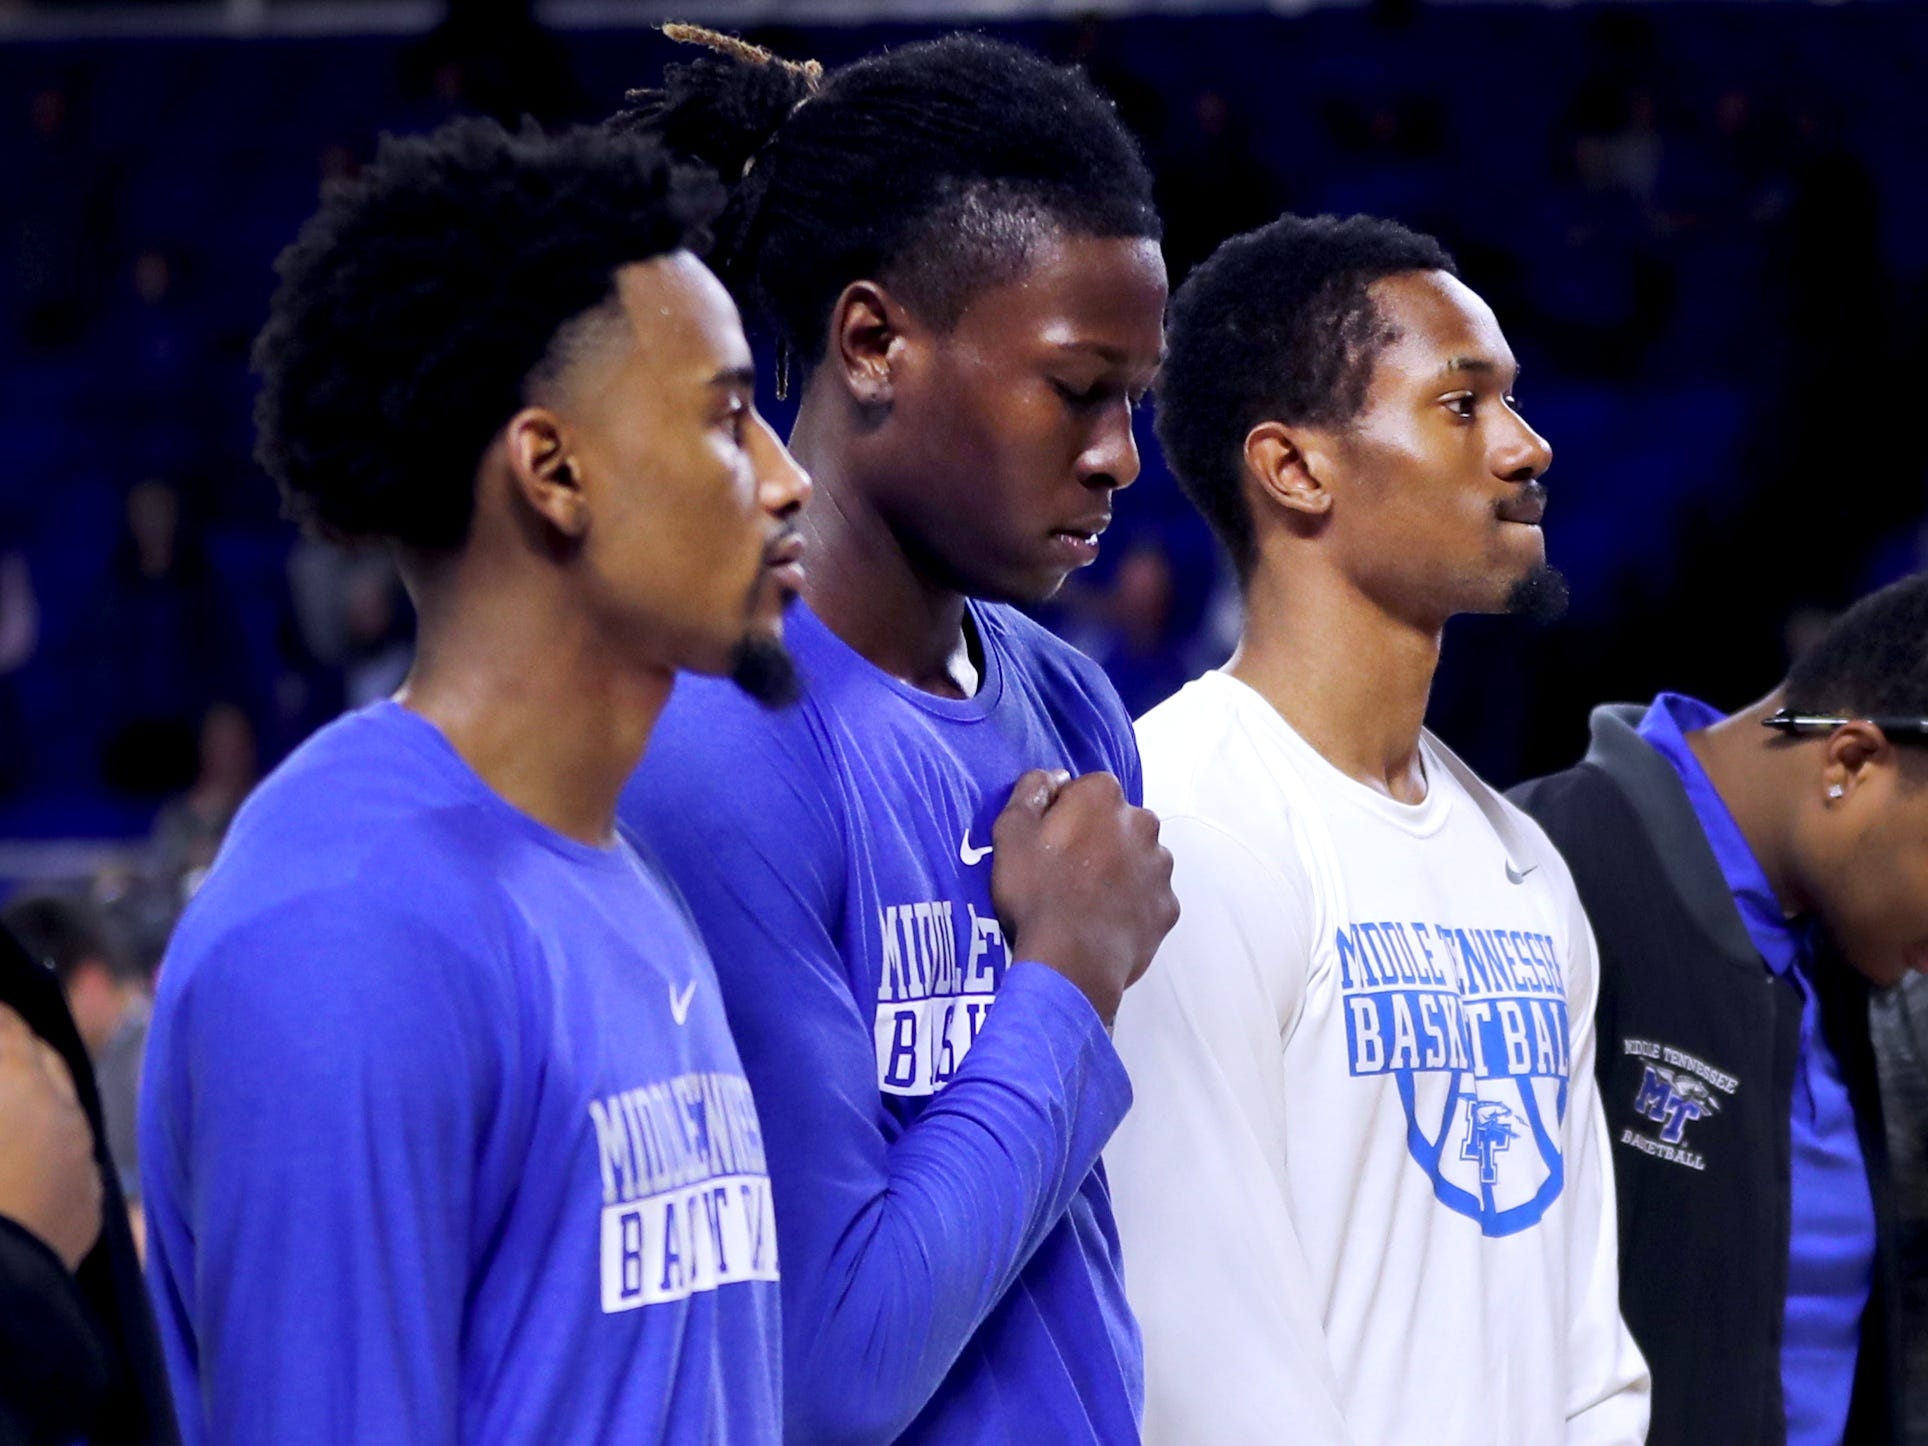 MTSU players have a moment of silence for MTSU Alumni and adjunct professor Angie Walker, who died in due to a tornado early Tuesday morning before the start of the game against Lees-McRae on Tuesday, Nov. 6, 2018.